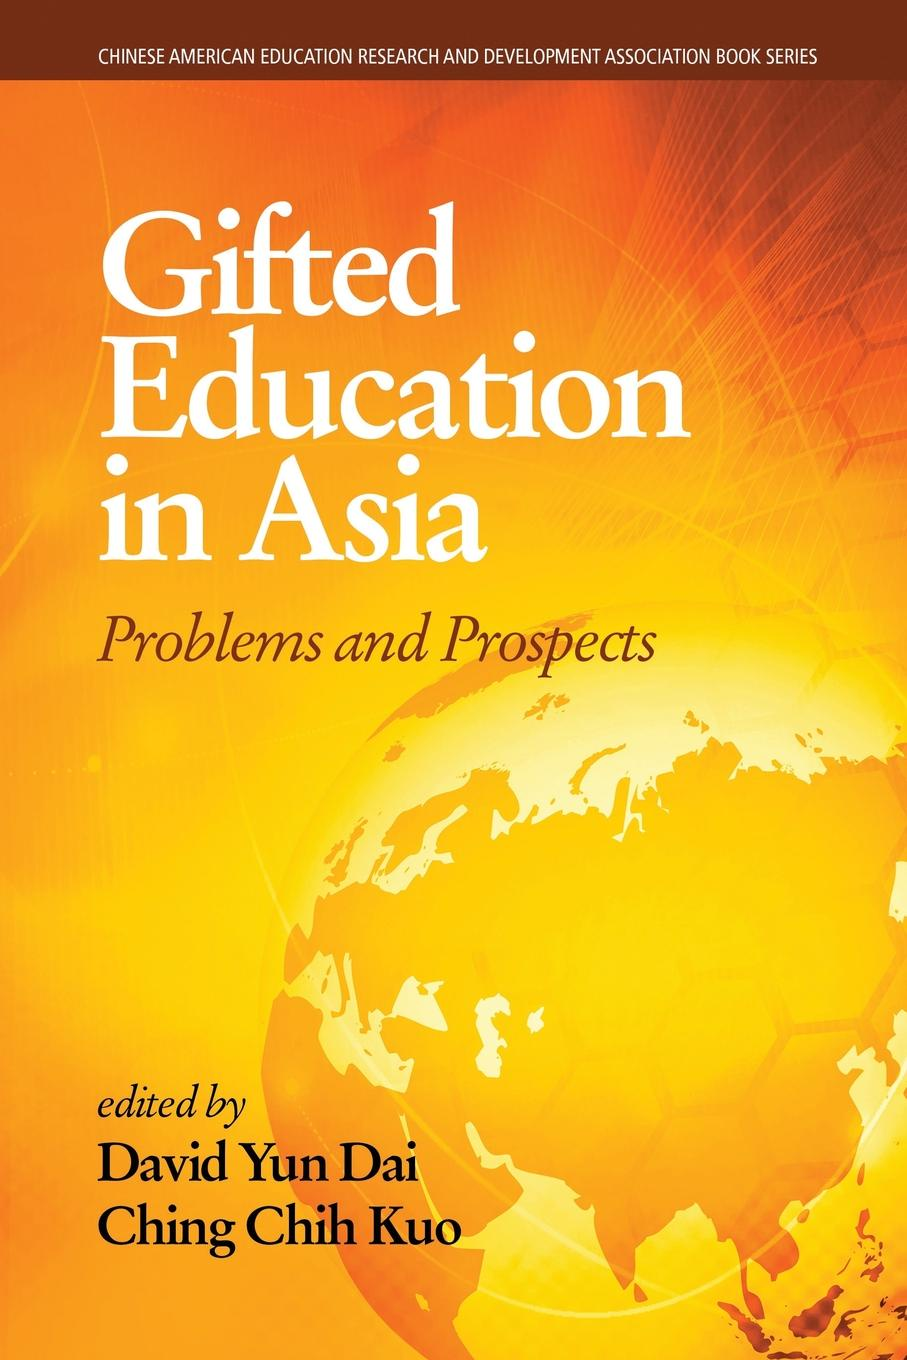 Gifted Education in Asia. Problems and Prospects nuclear deterrence in south asia